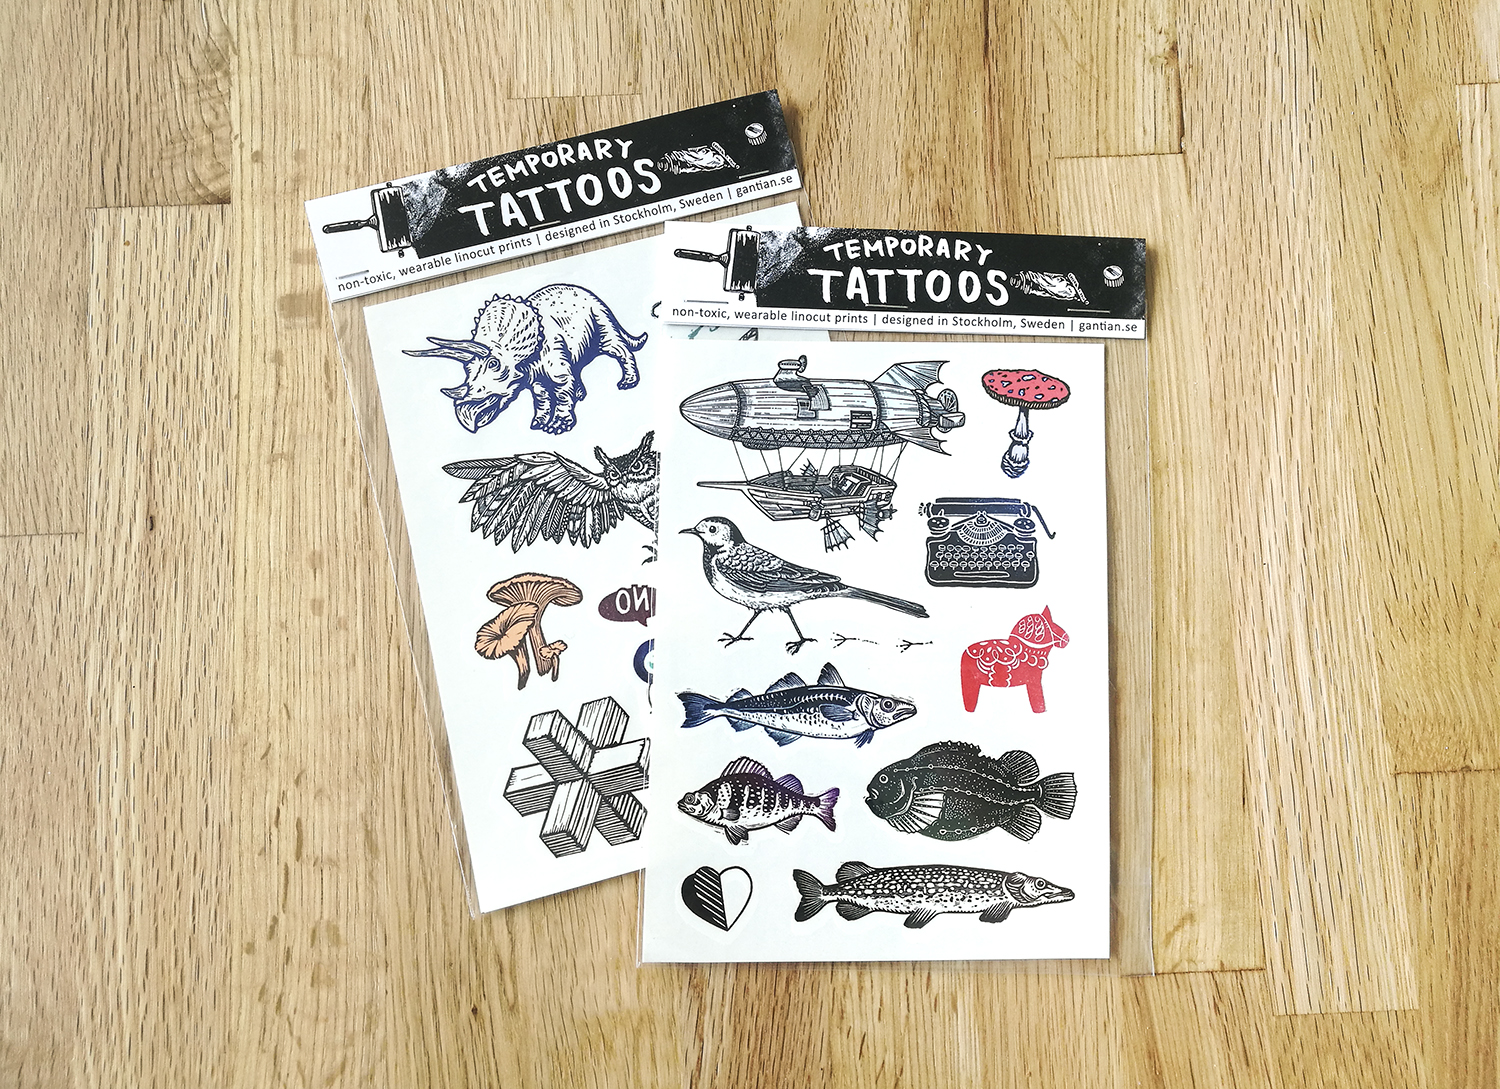 Two temporary tattoo sheets based on Tian's linocut designs.